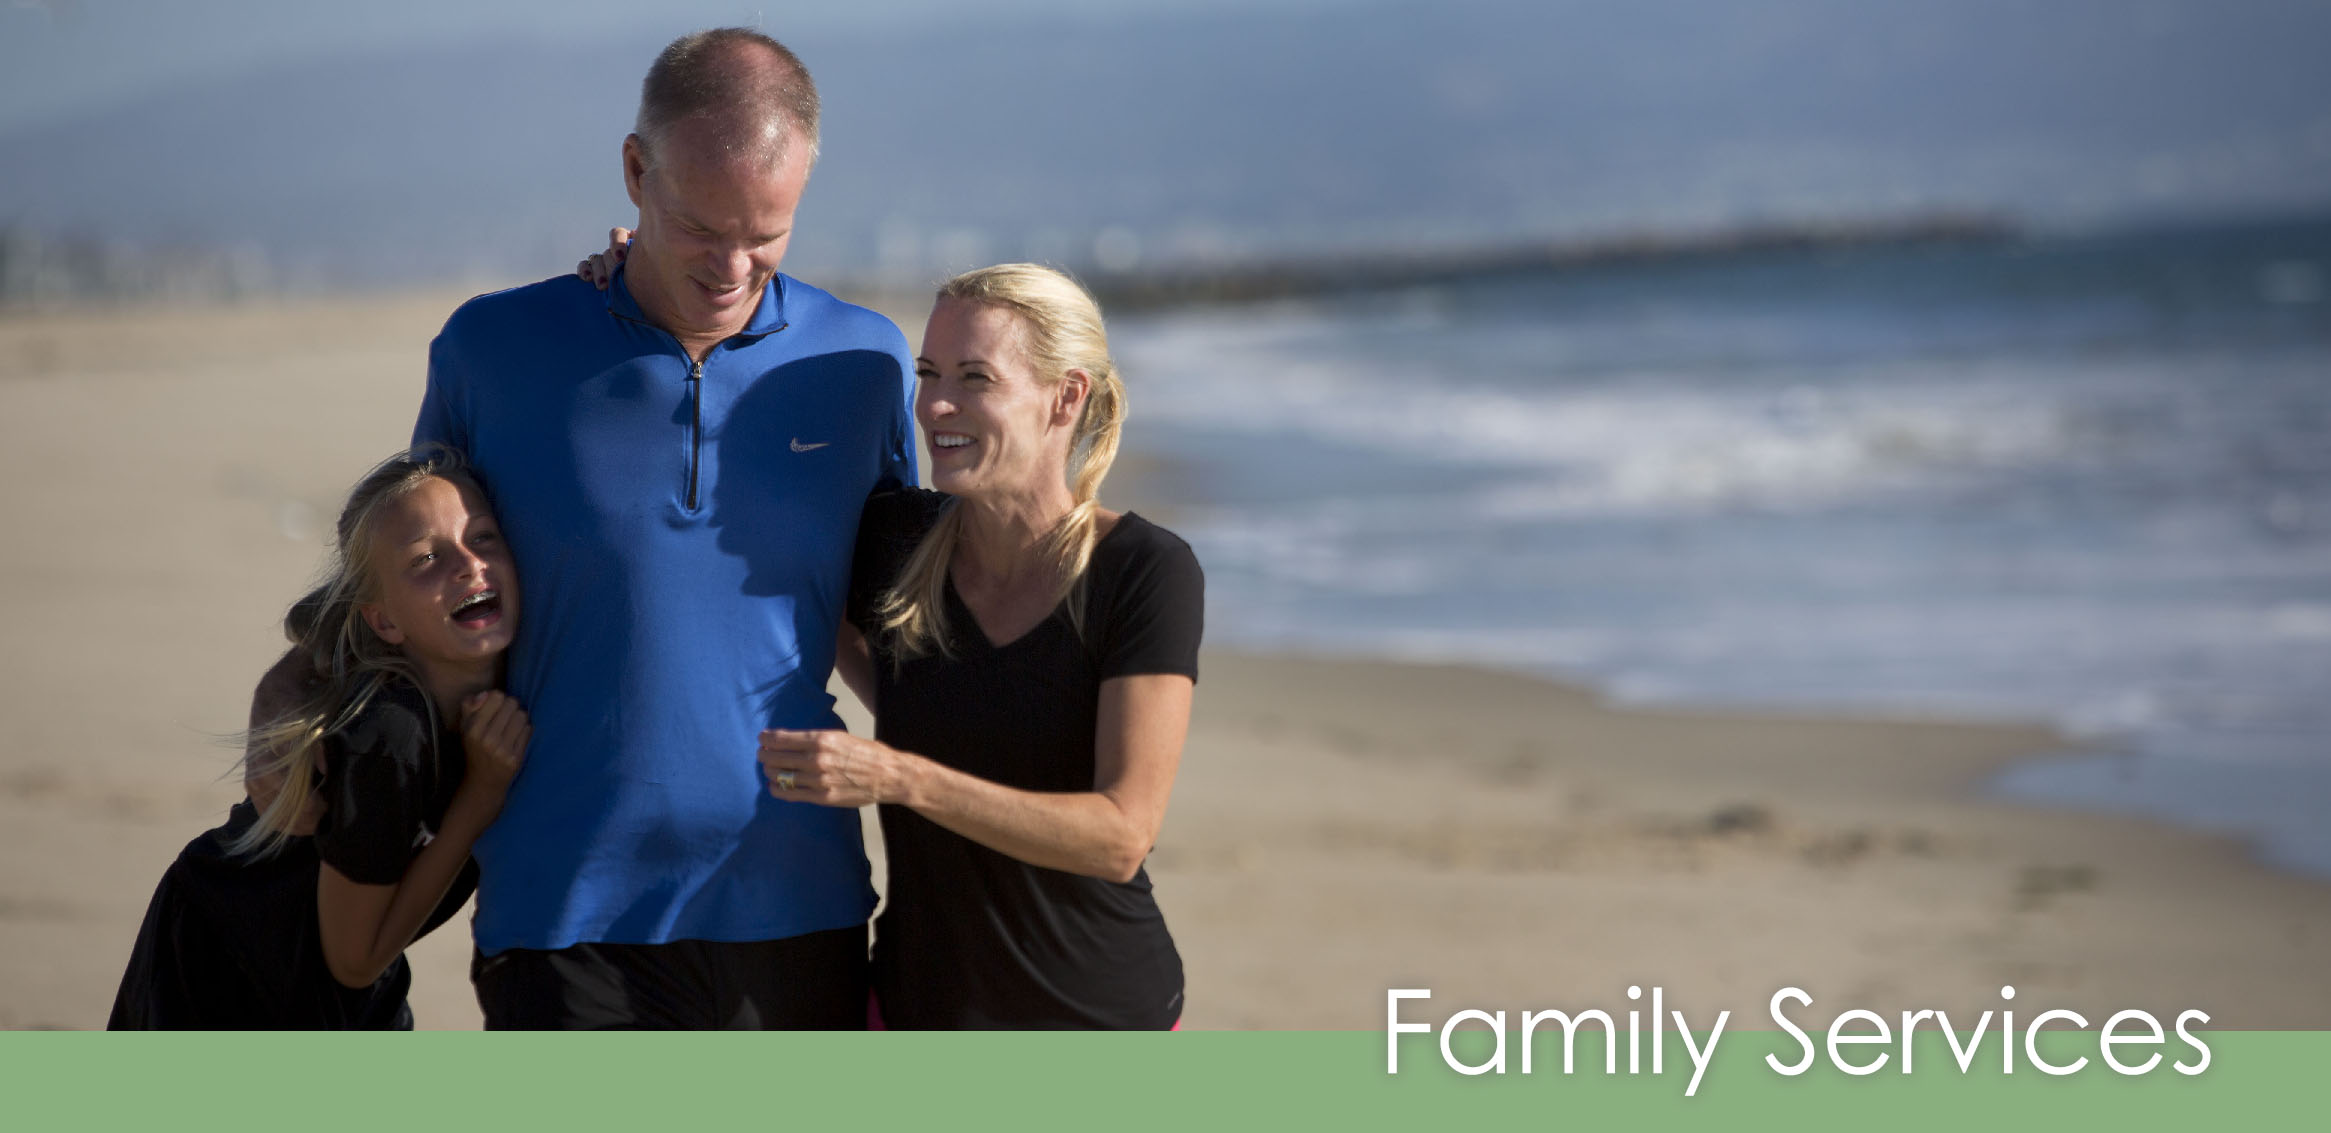 homepage slideshow - new size - family services.jpg